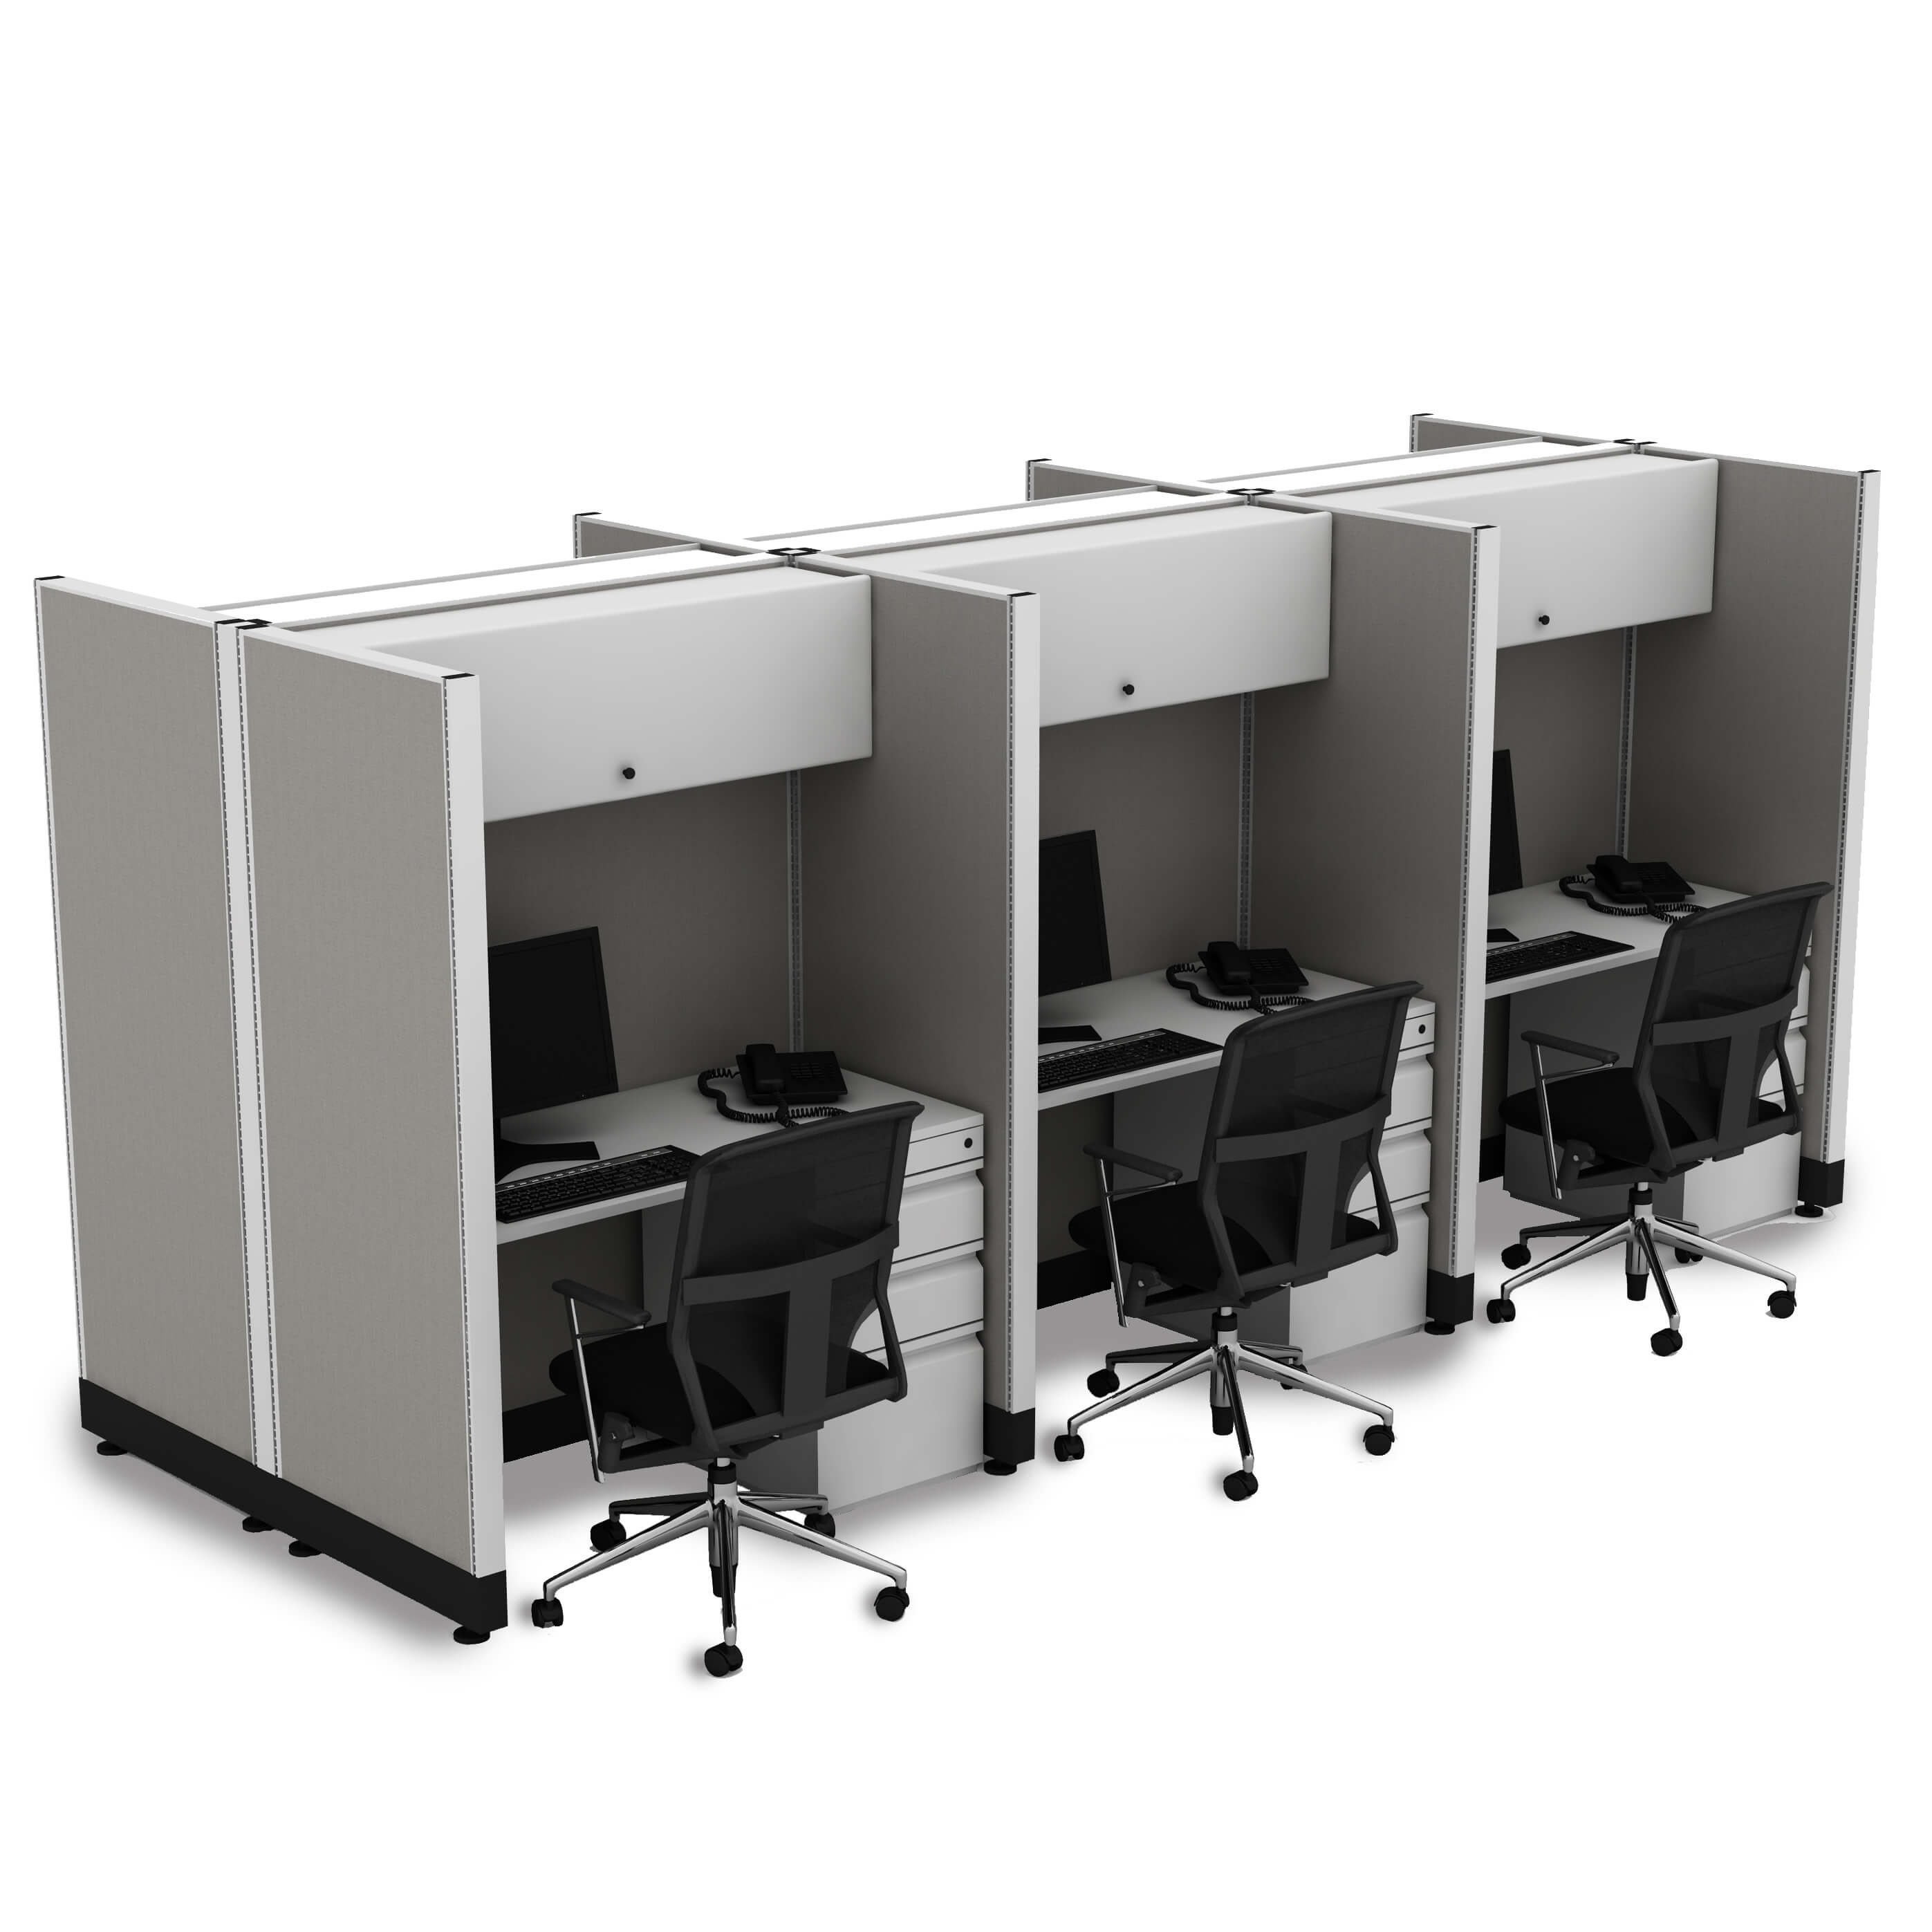 Hot desking hoteling stations 6 pack powered